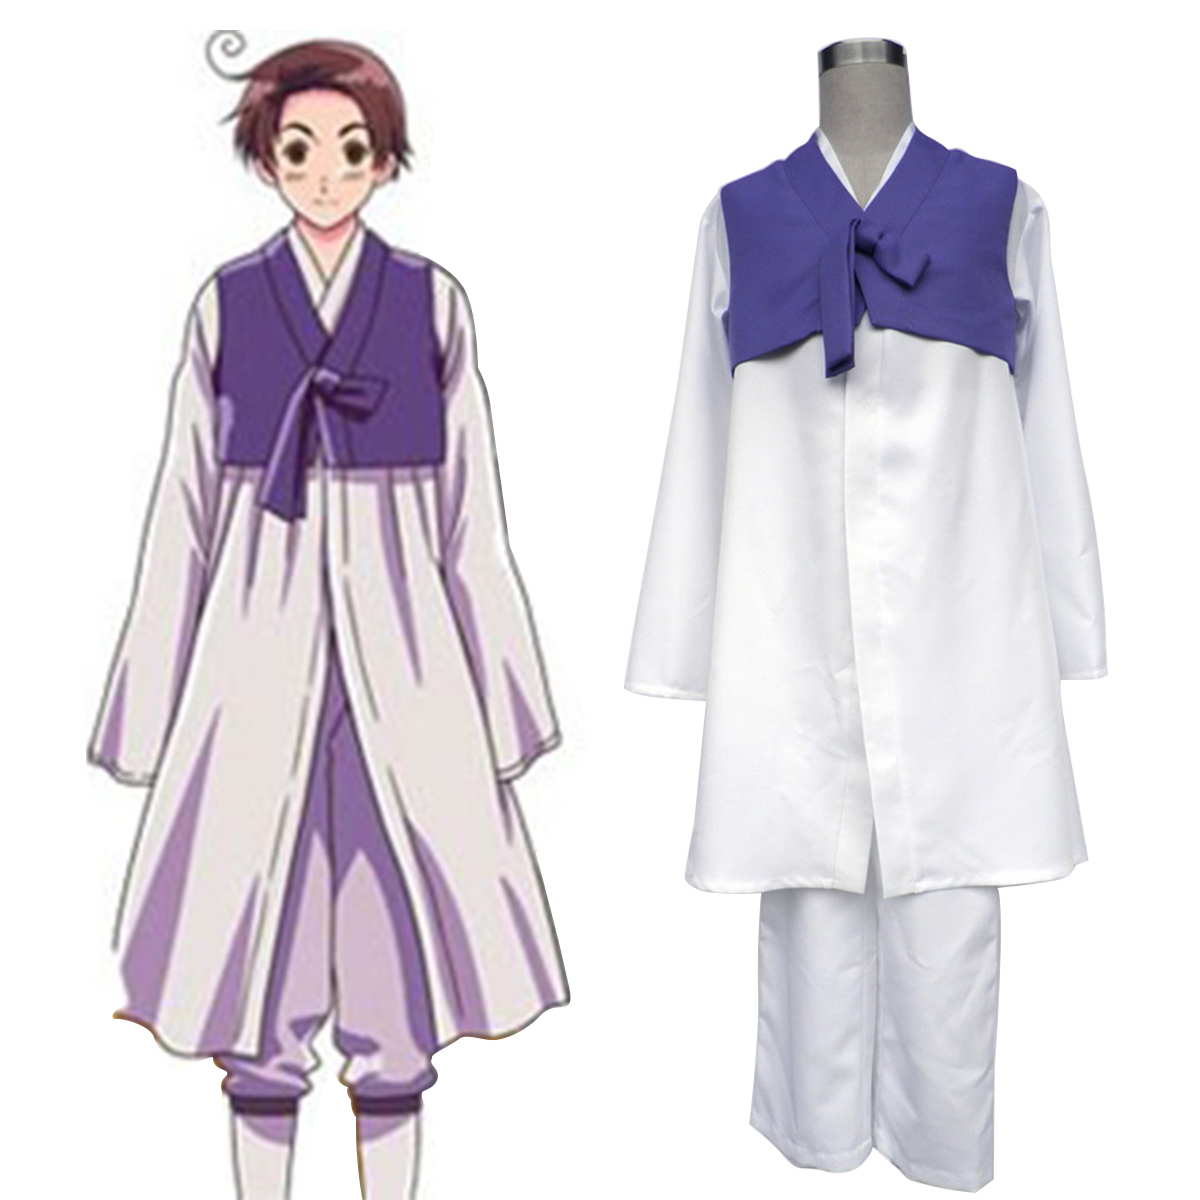 Axis Powers Hetalia South Korea 1 Anime Cosplay Costumes Outfit